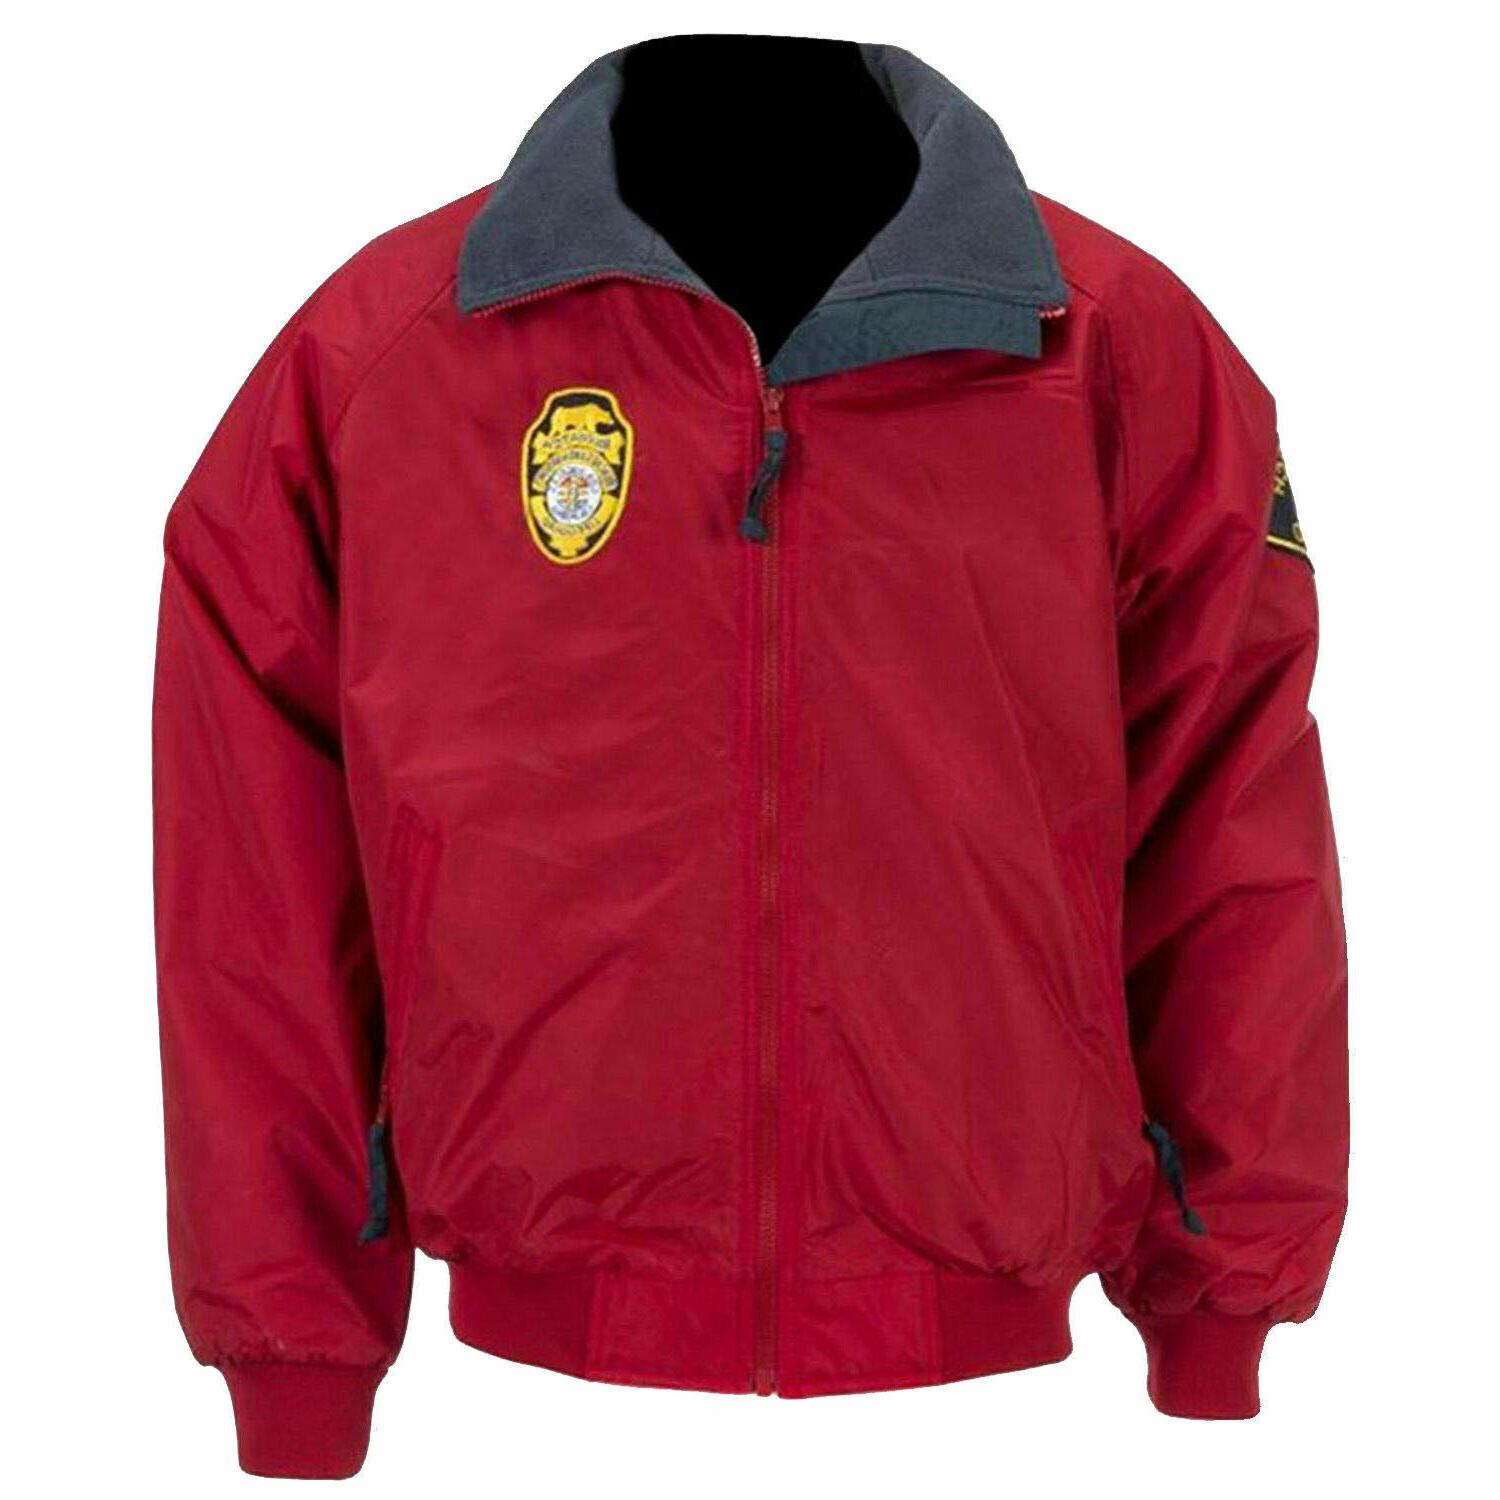 BAYWATCH LIFEGUARD OUTFIT COTTON BOMBER